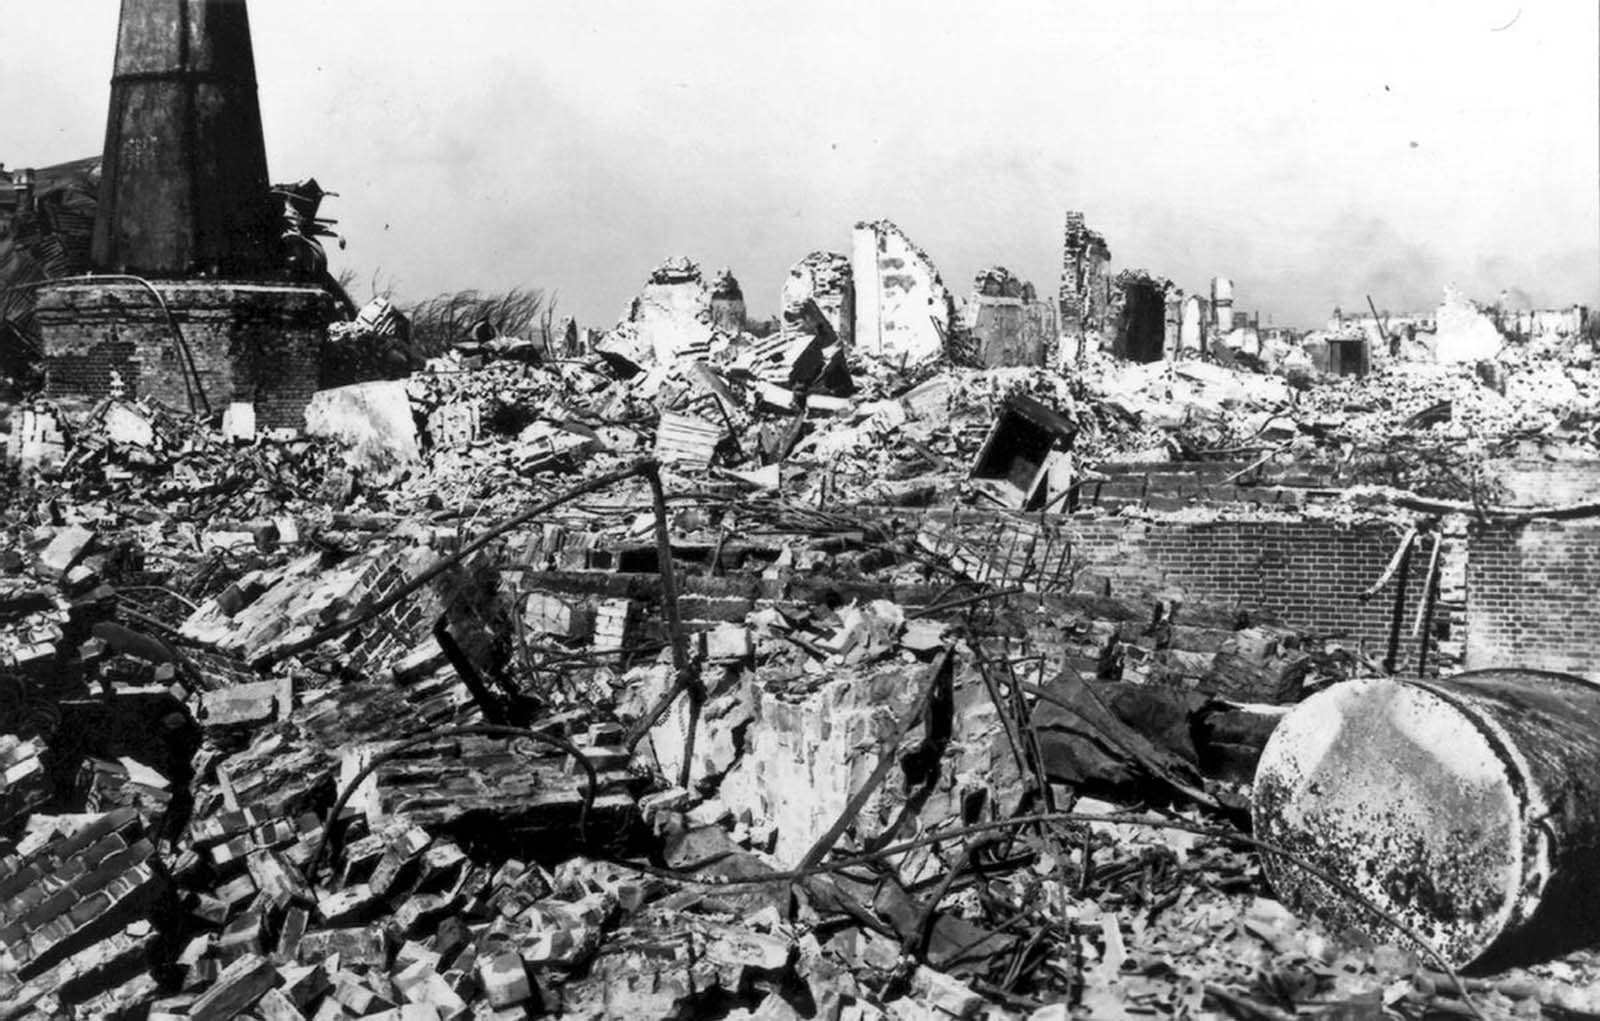 okyo and Yokohama, Japan, Earthquake September 1, 1923.